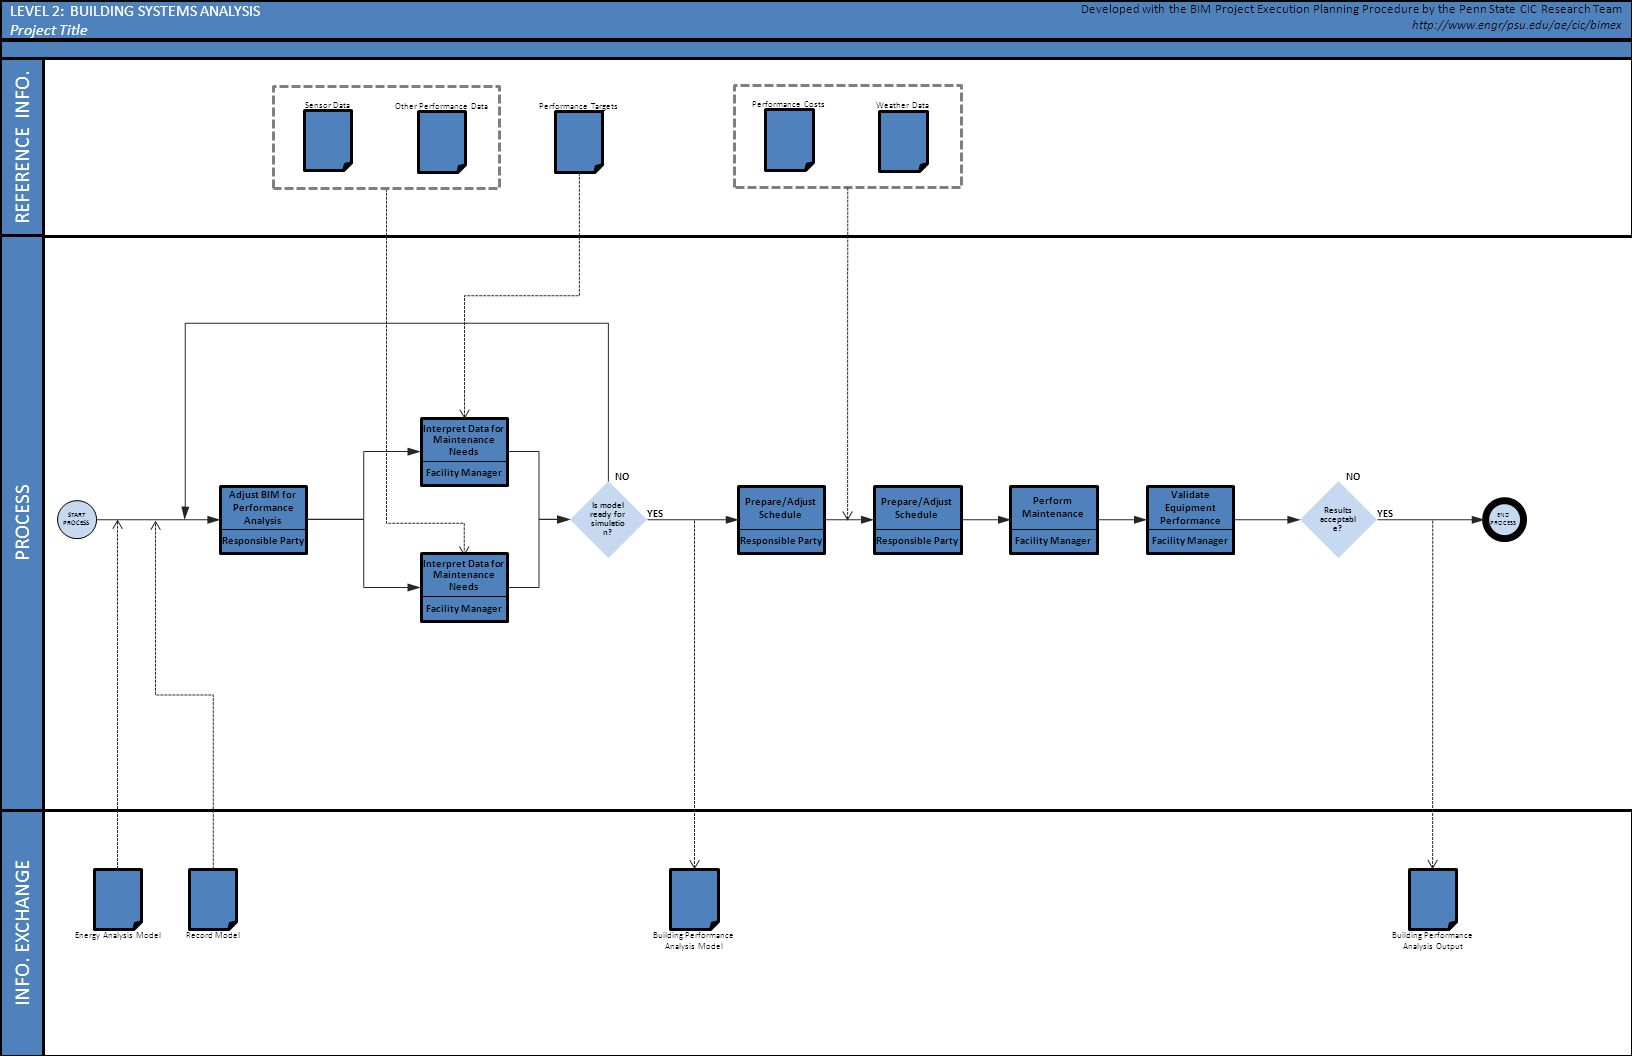 Building systems analysis